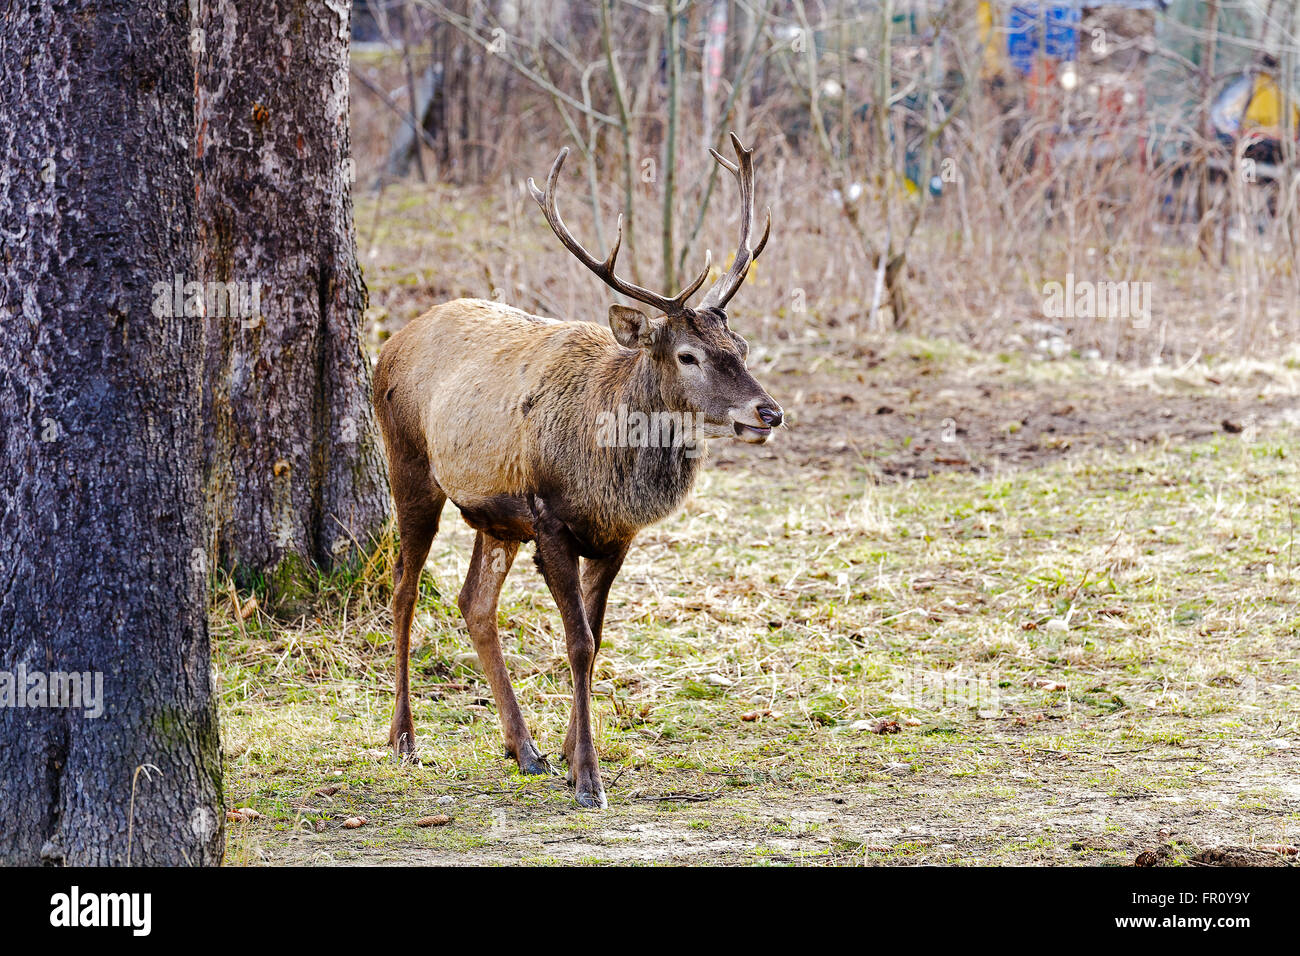 The deer next to trees - Stock Image